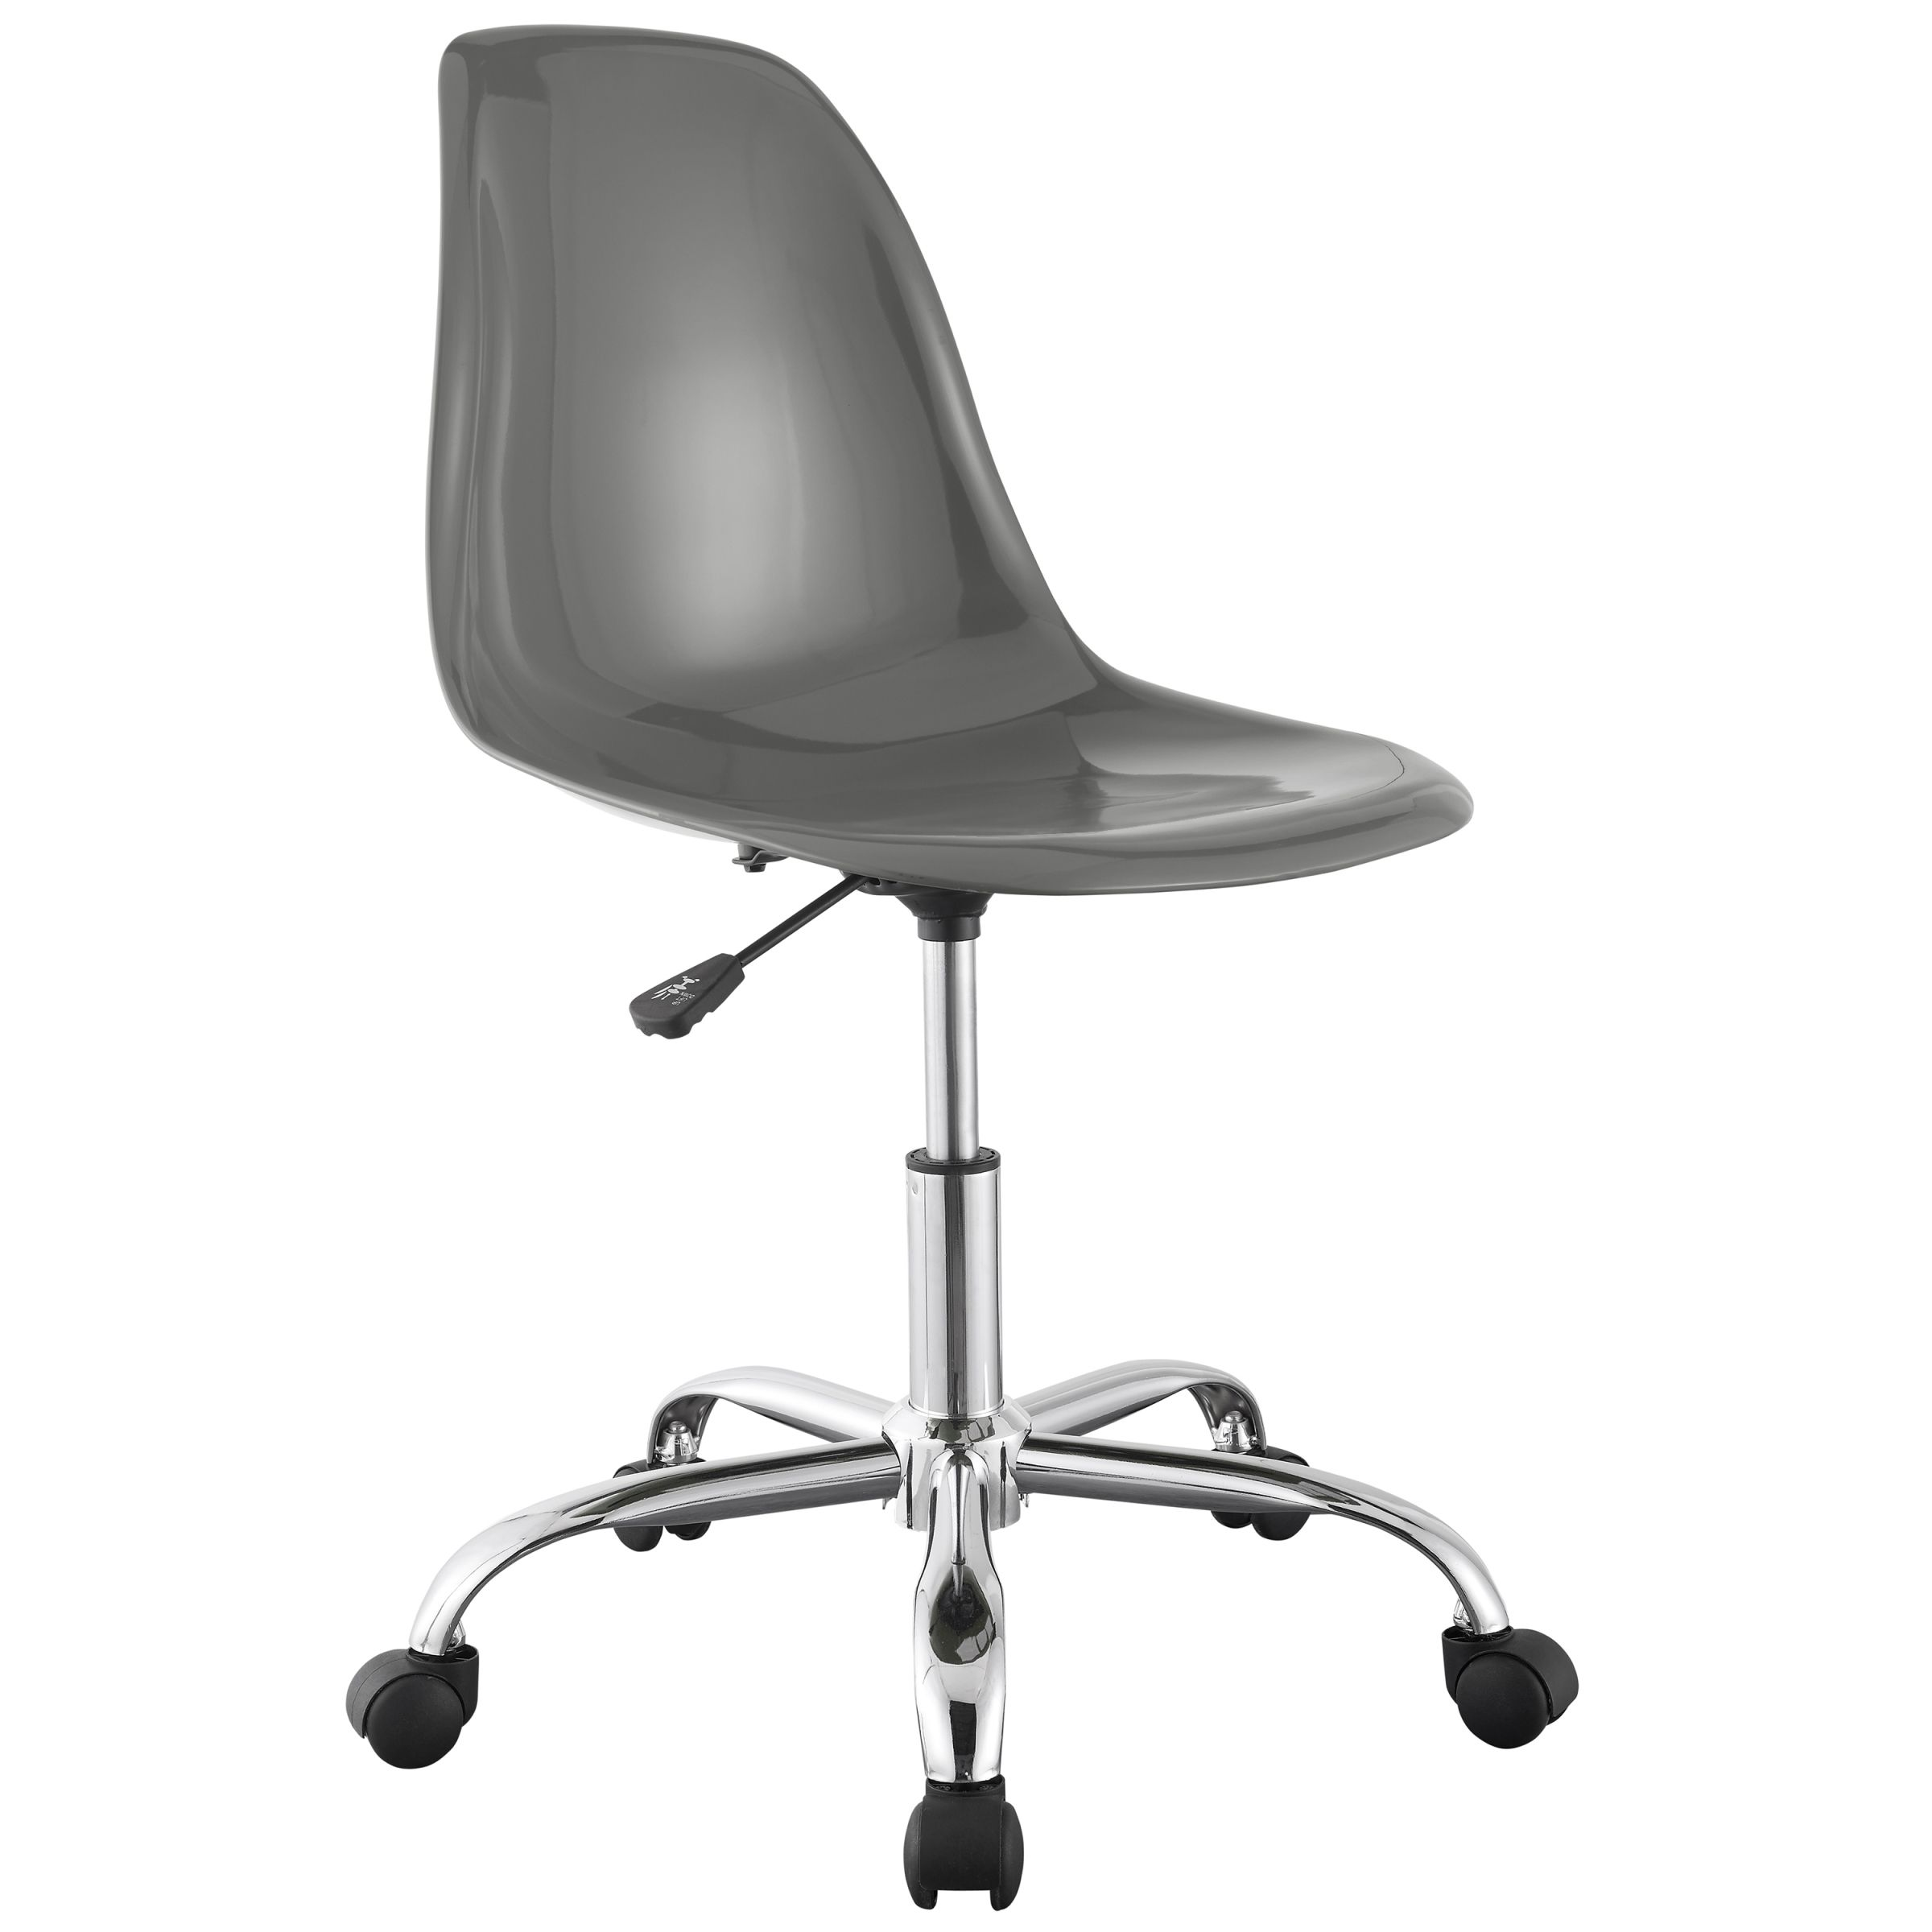 Home Contemporary office chairs, Office chair, Chair